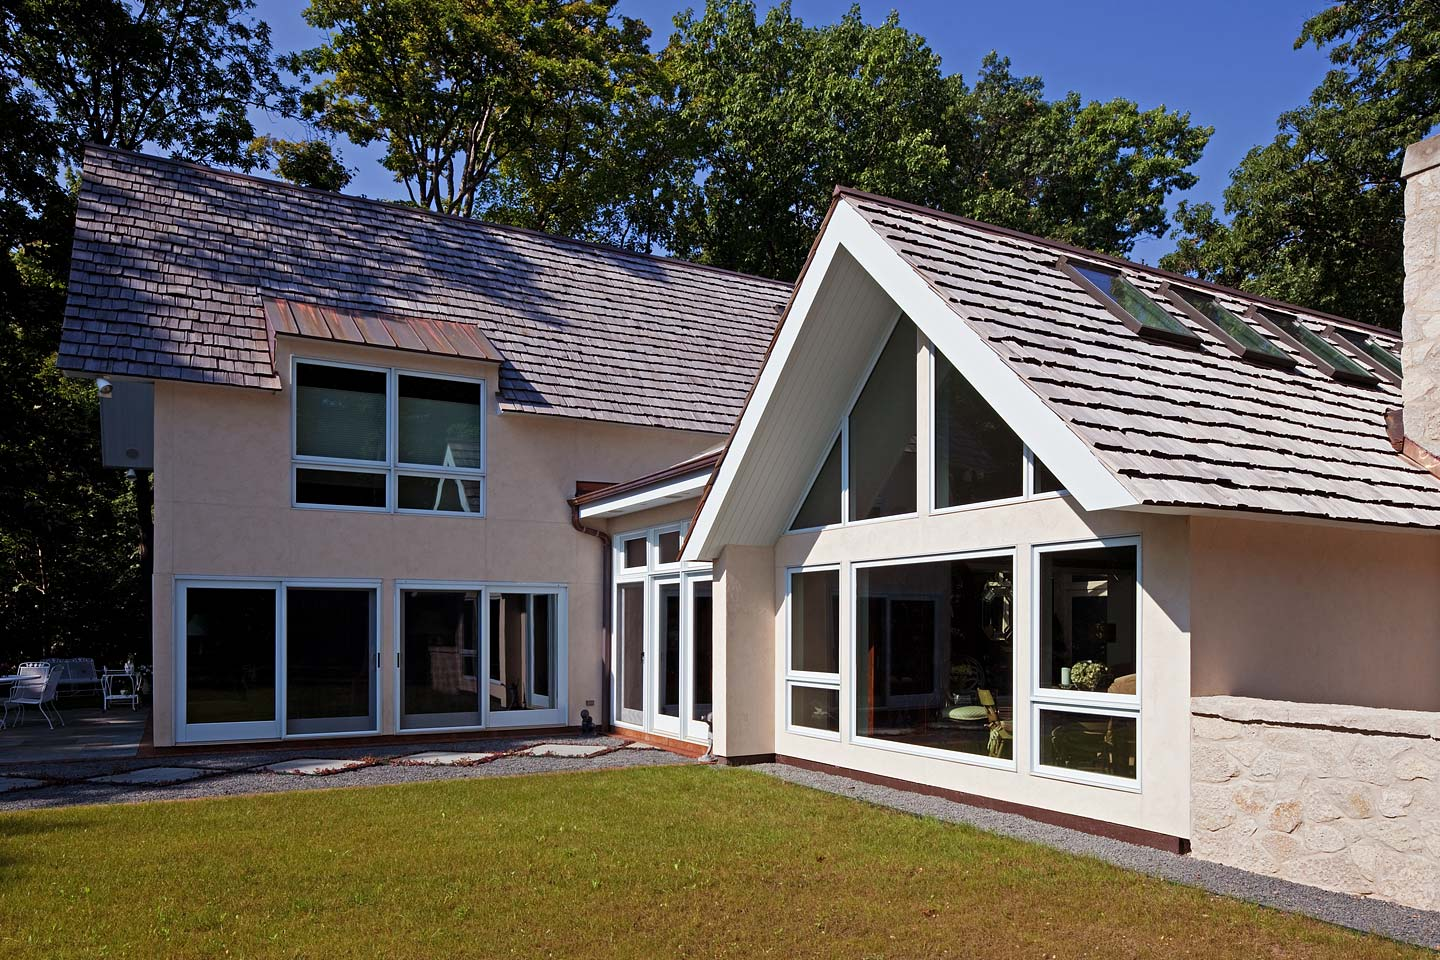 a close-up rear exterior perspective of the bungalow style home featuring a dynamic roofline, photographed by Jacob Rosenfeld